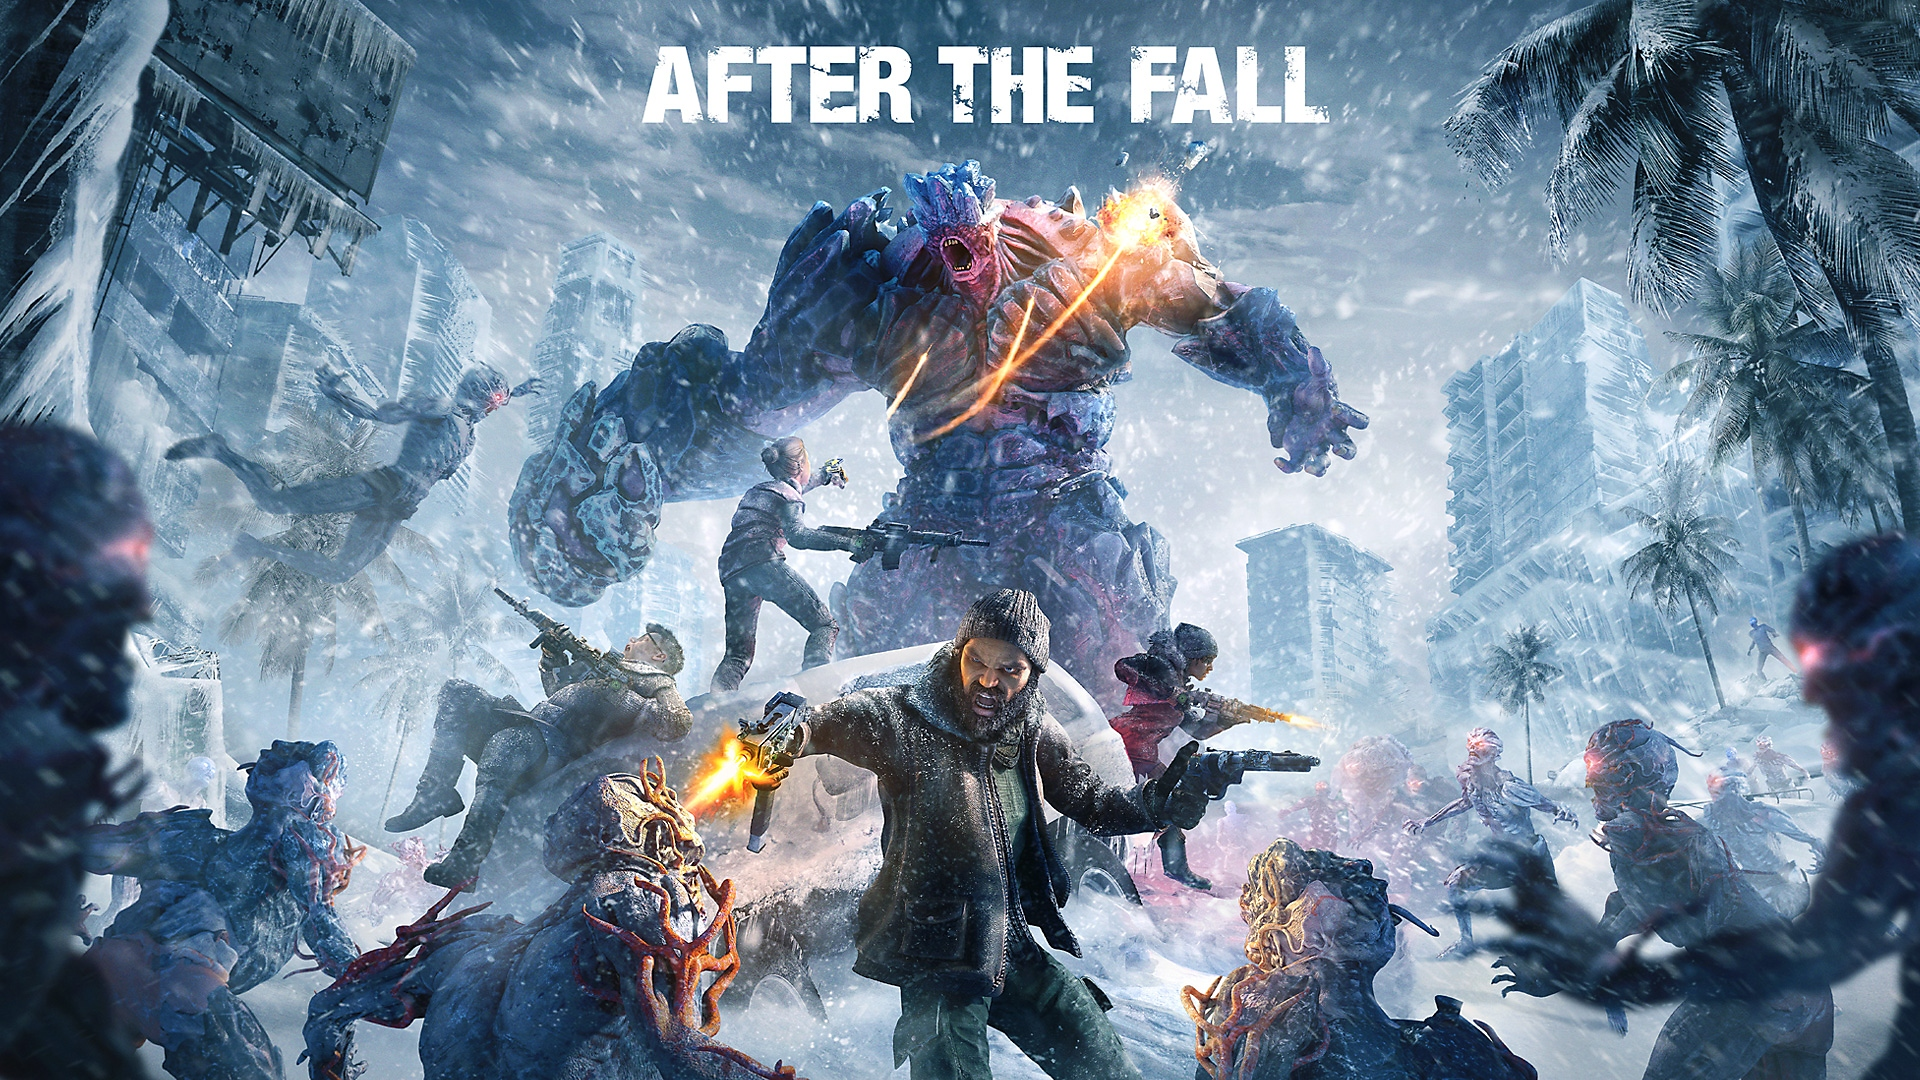 After the Fall artwork